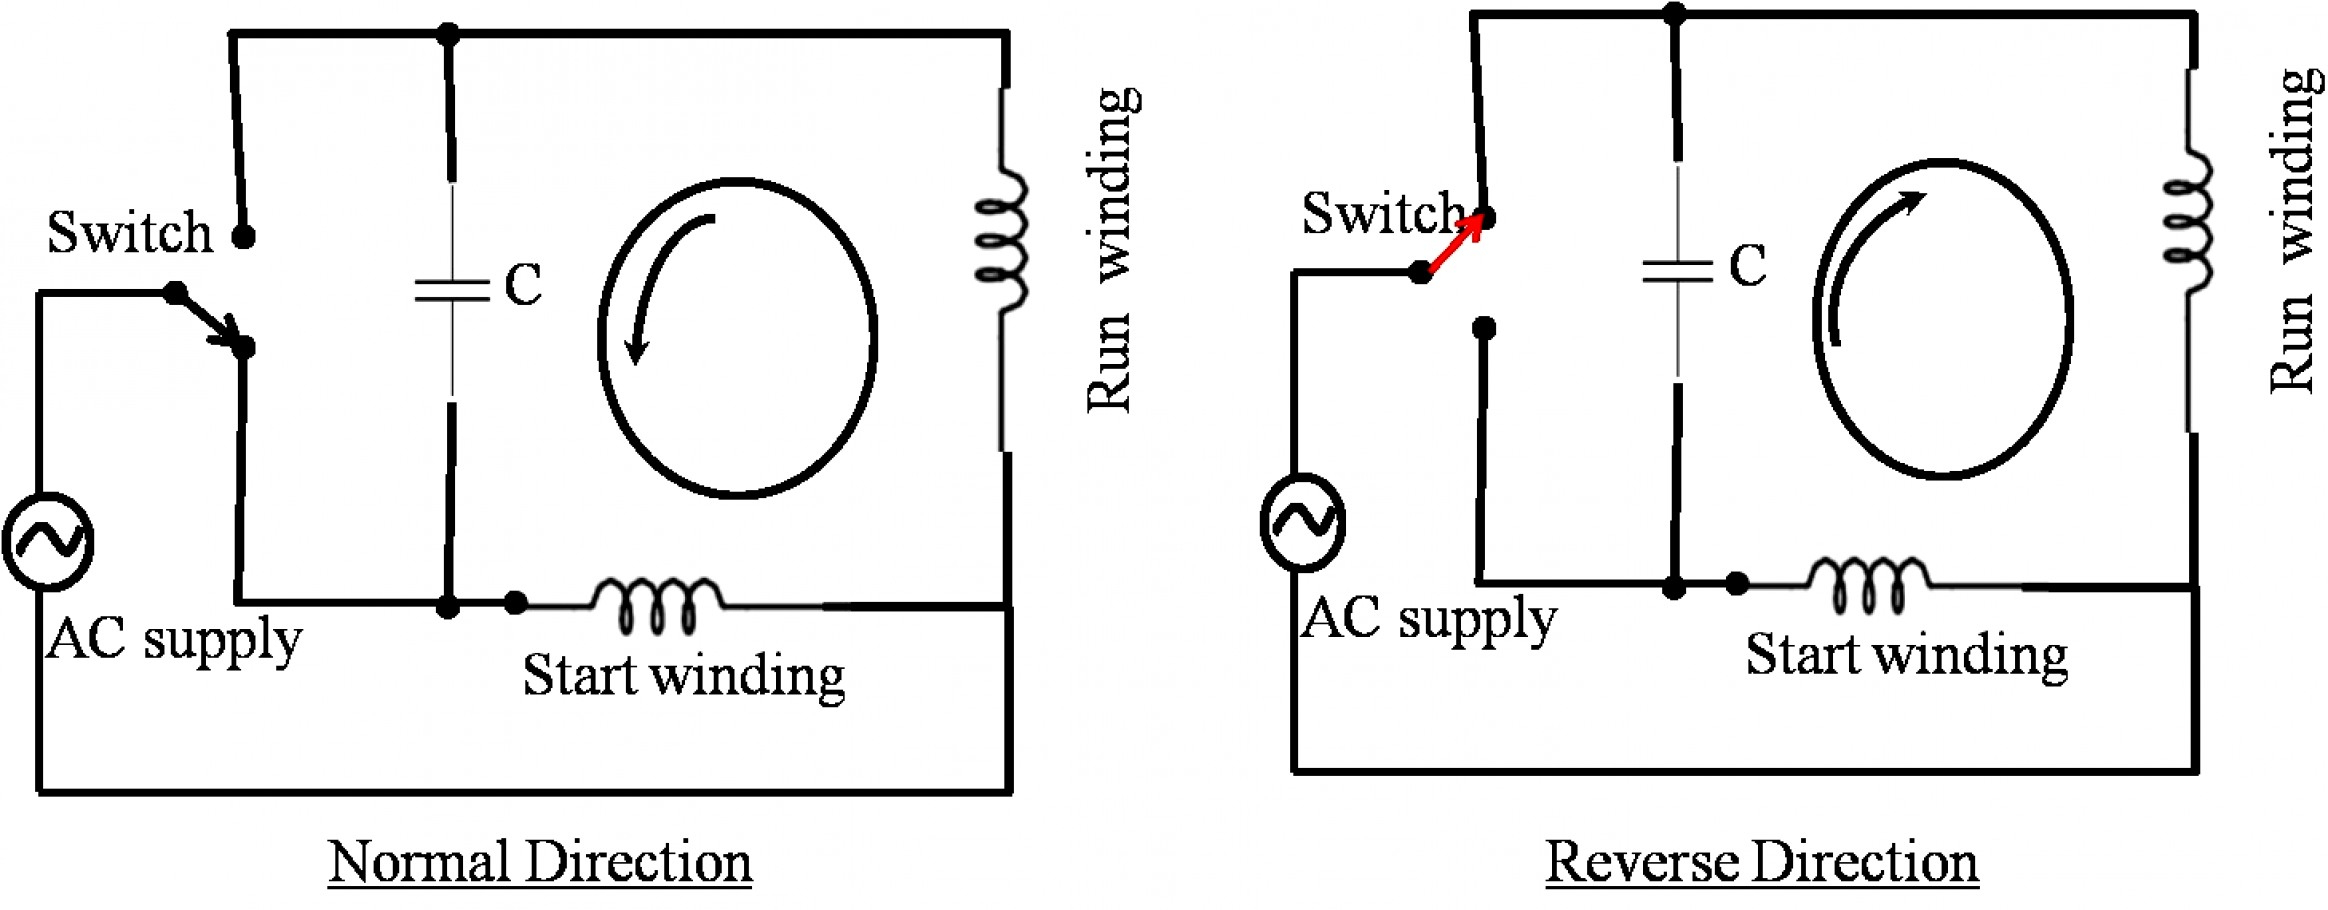 Pictures Single Phase 220V Wiring Diagram Compressor Simple - Ac Motor Reversing Switch Wiring Diagram